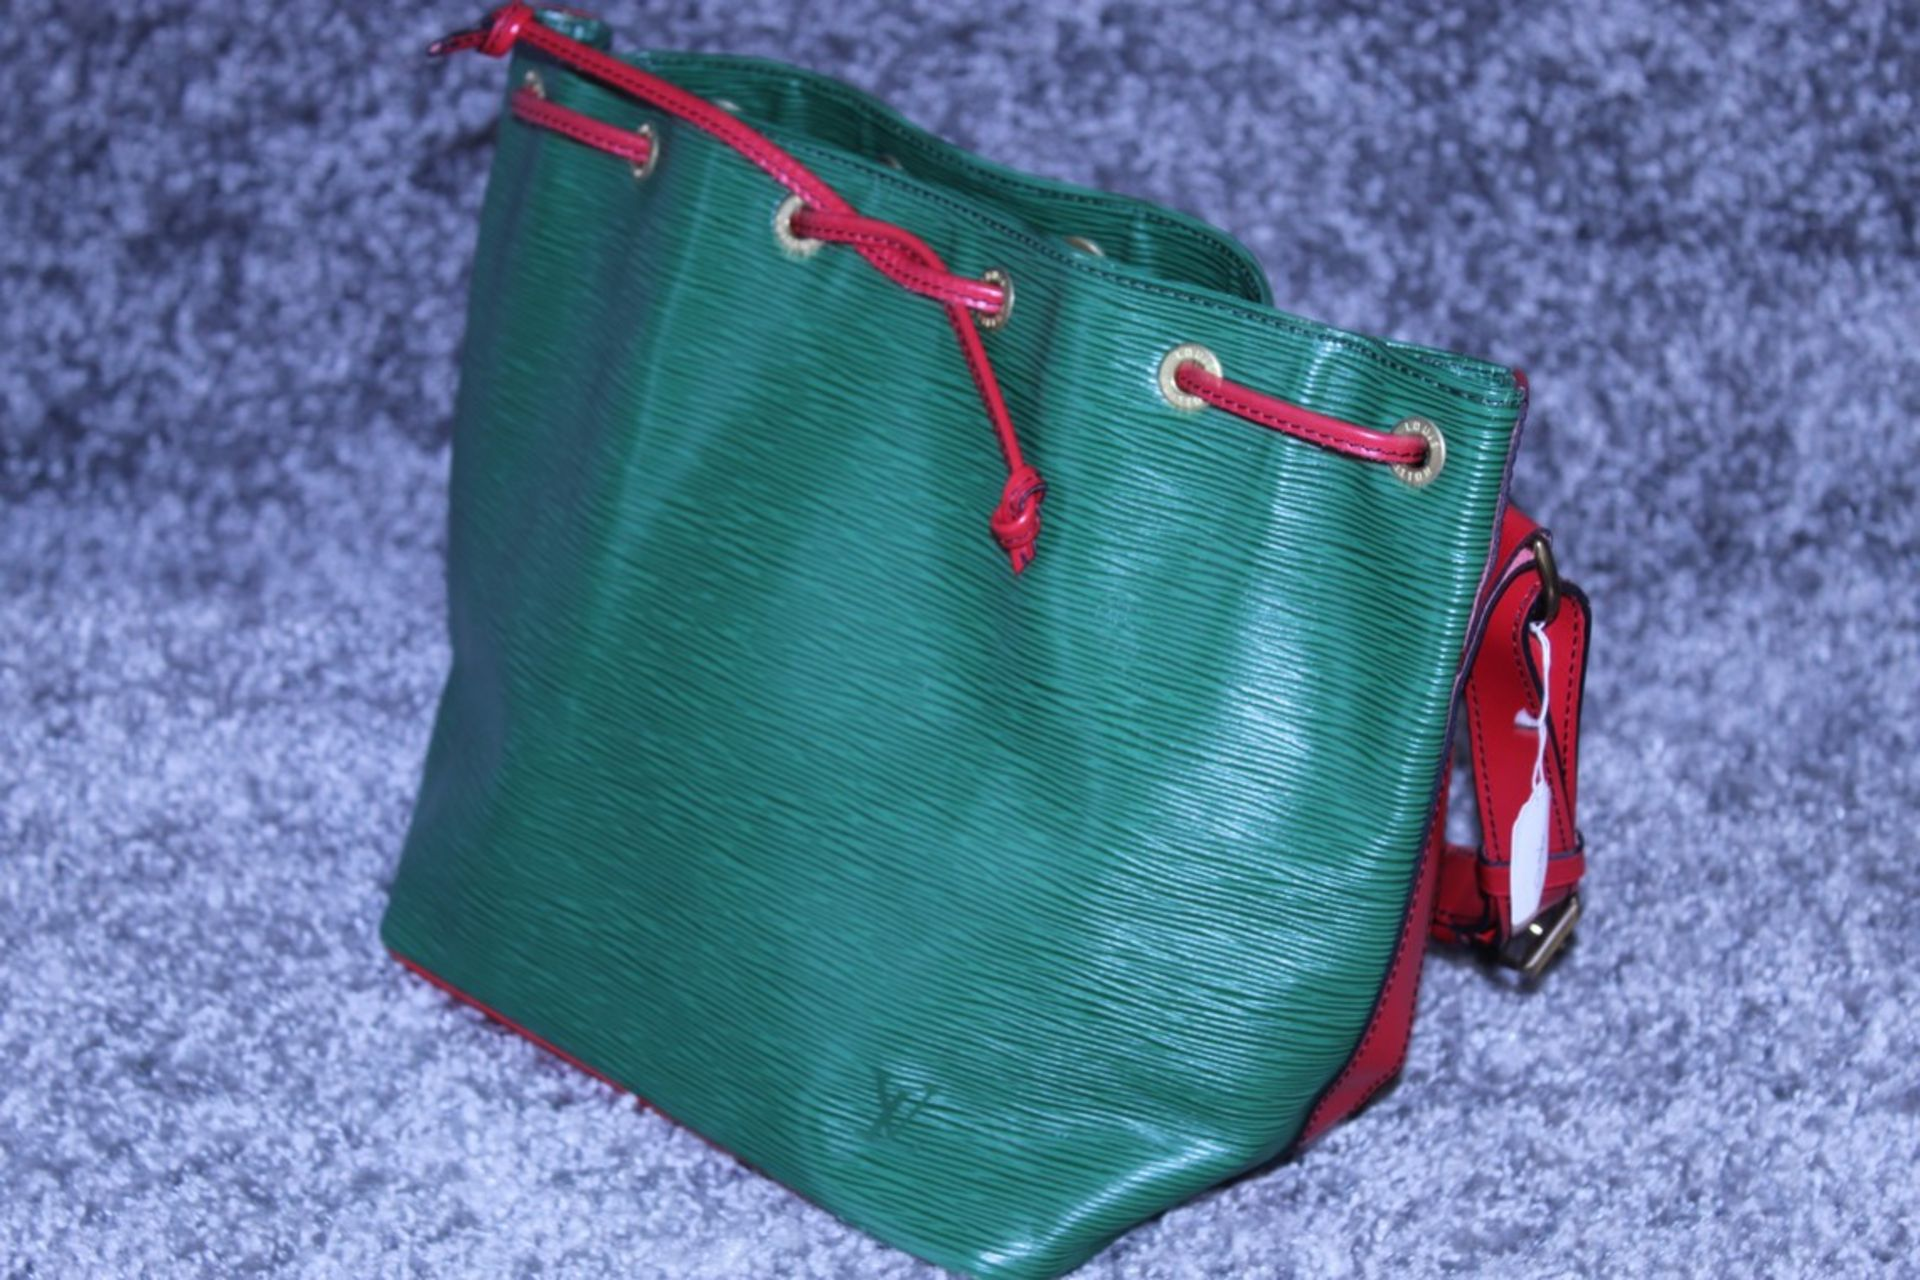 RRP £1200 Louis Vuitton Noe Bicolour Black Stitching Shoulder Bag In Green/Red Epi Calf Leather With - Image 4 of 5